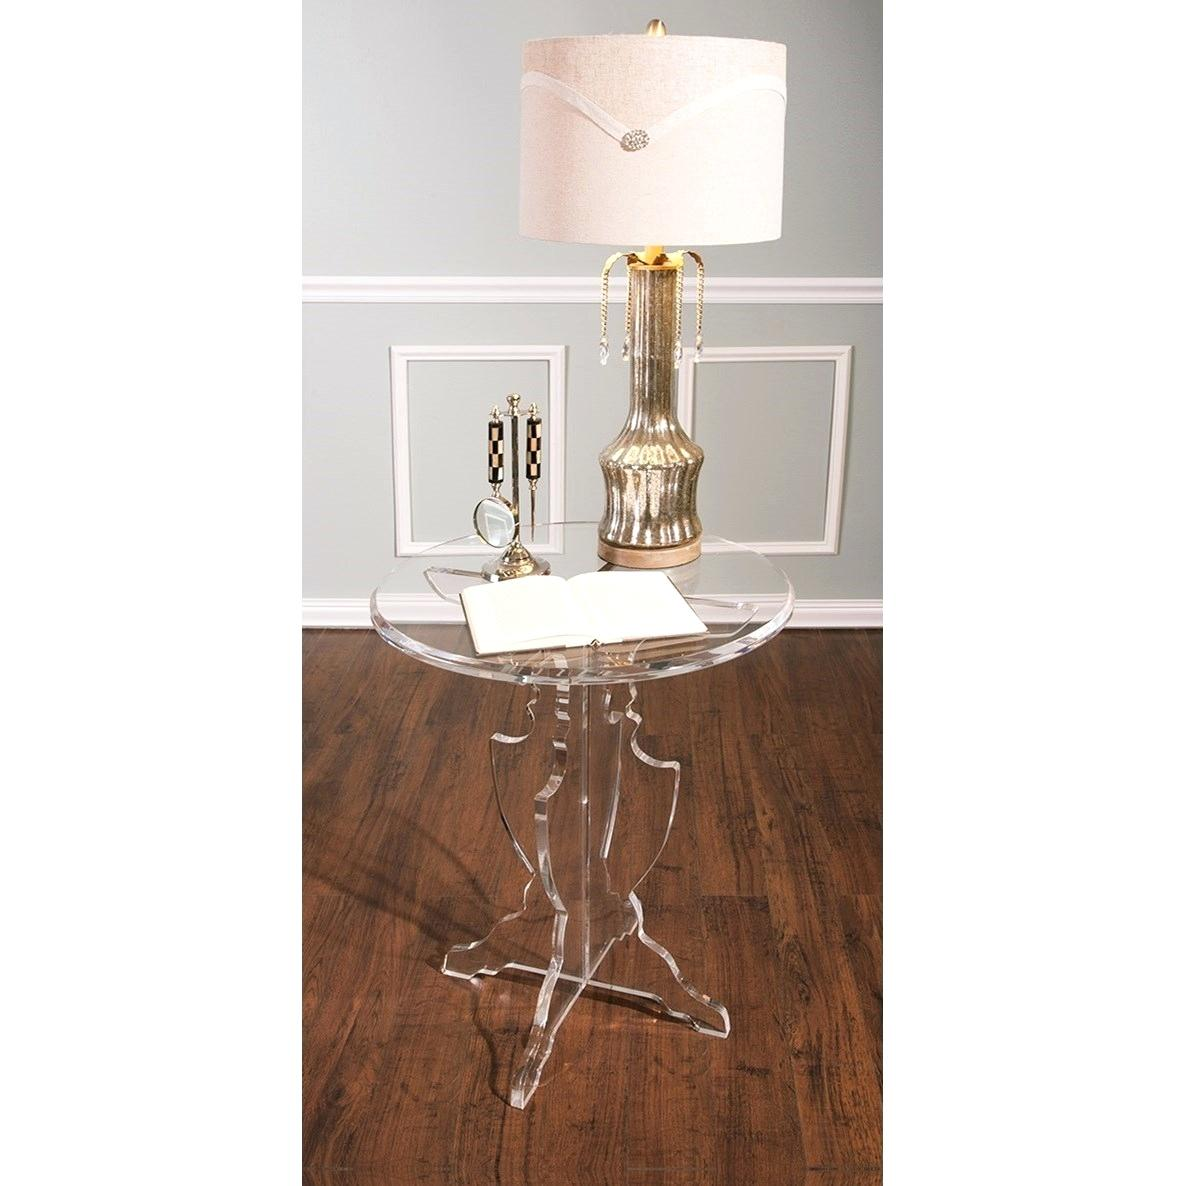 acrylic accent table columbiariverconcours worldwide home tables and cabinets prestige baroque clear high lamp victorian lamps allen jones fire whole shades gold coffee decor